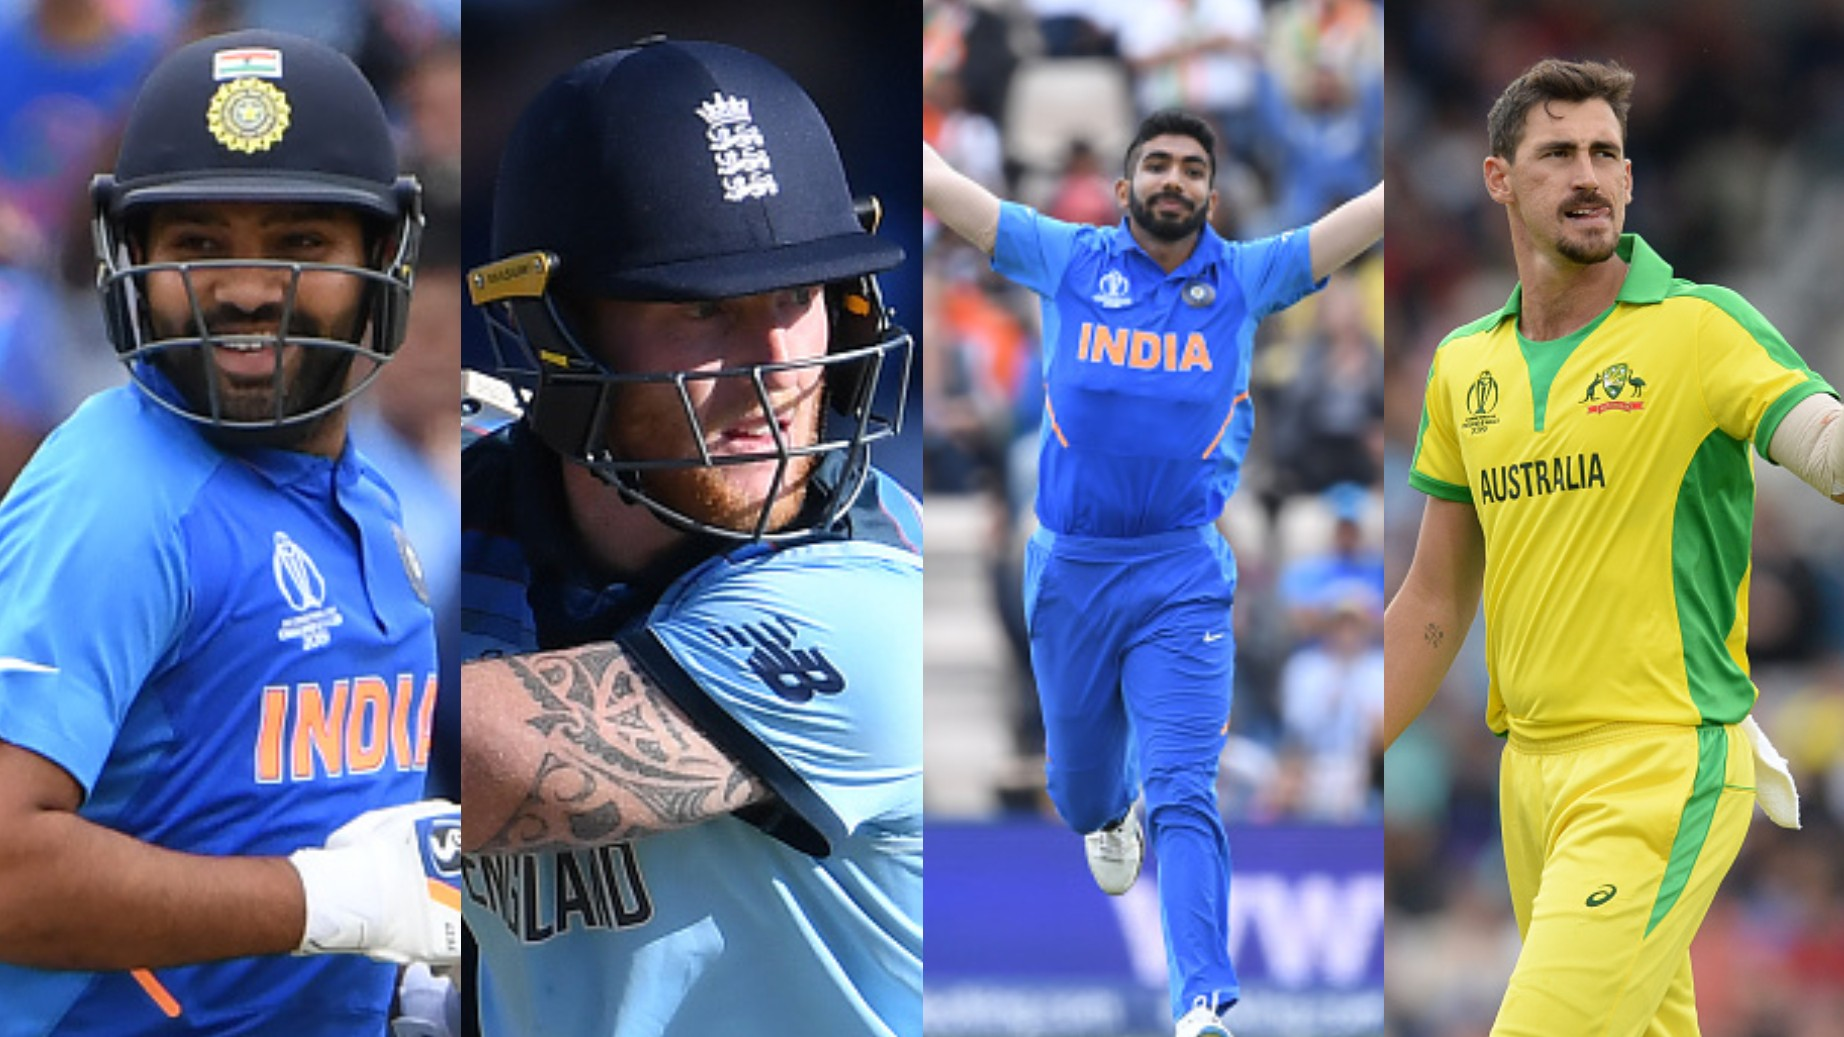 CWC 2019: COC presents the Best XI of ICC World Cup